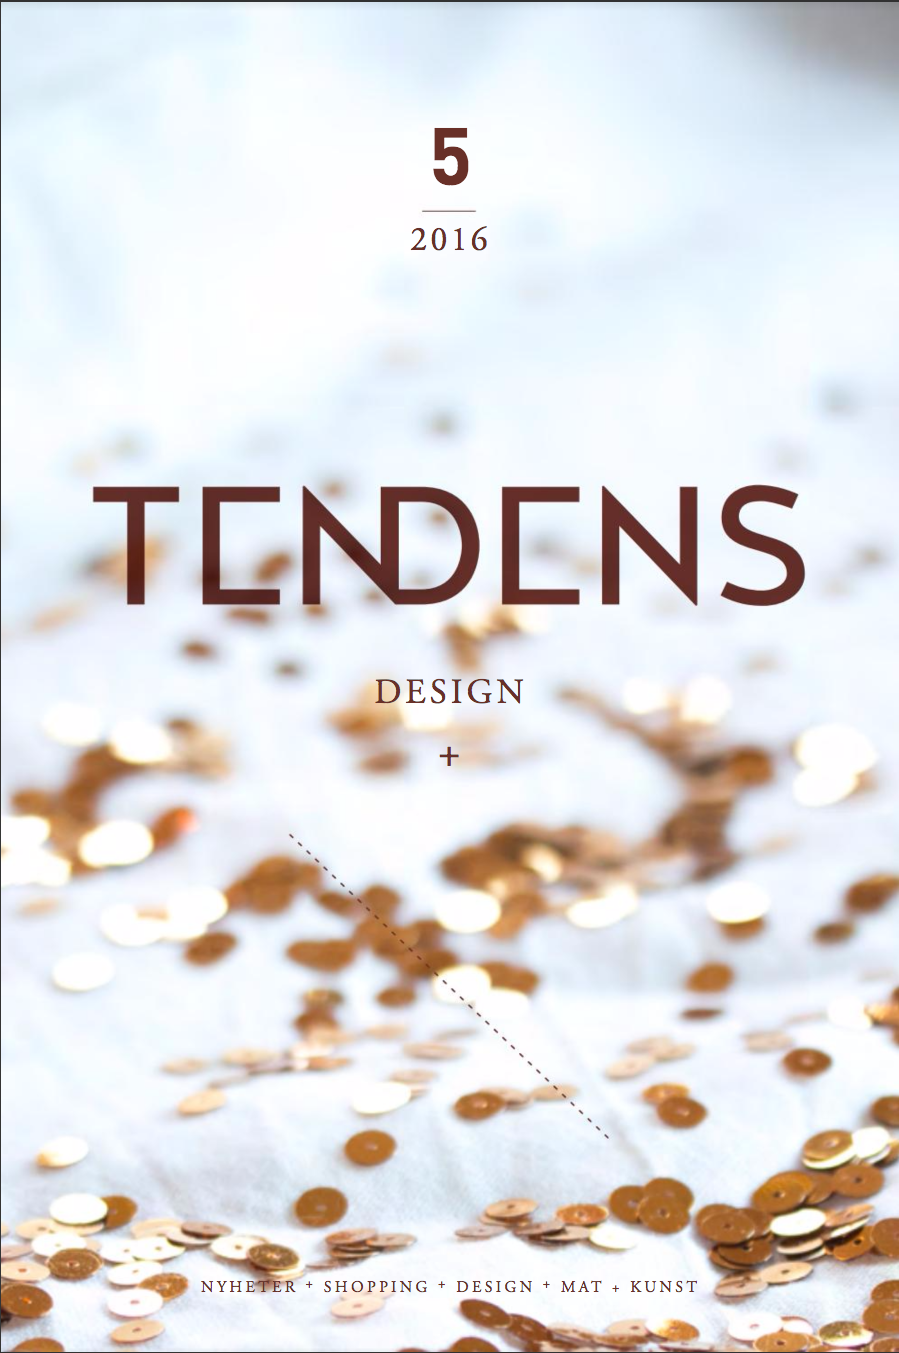 TENDENS  Design magazine featuring POAST at  Wallendahl Magasin